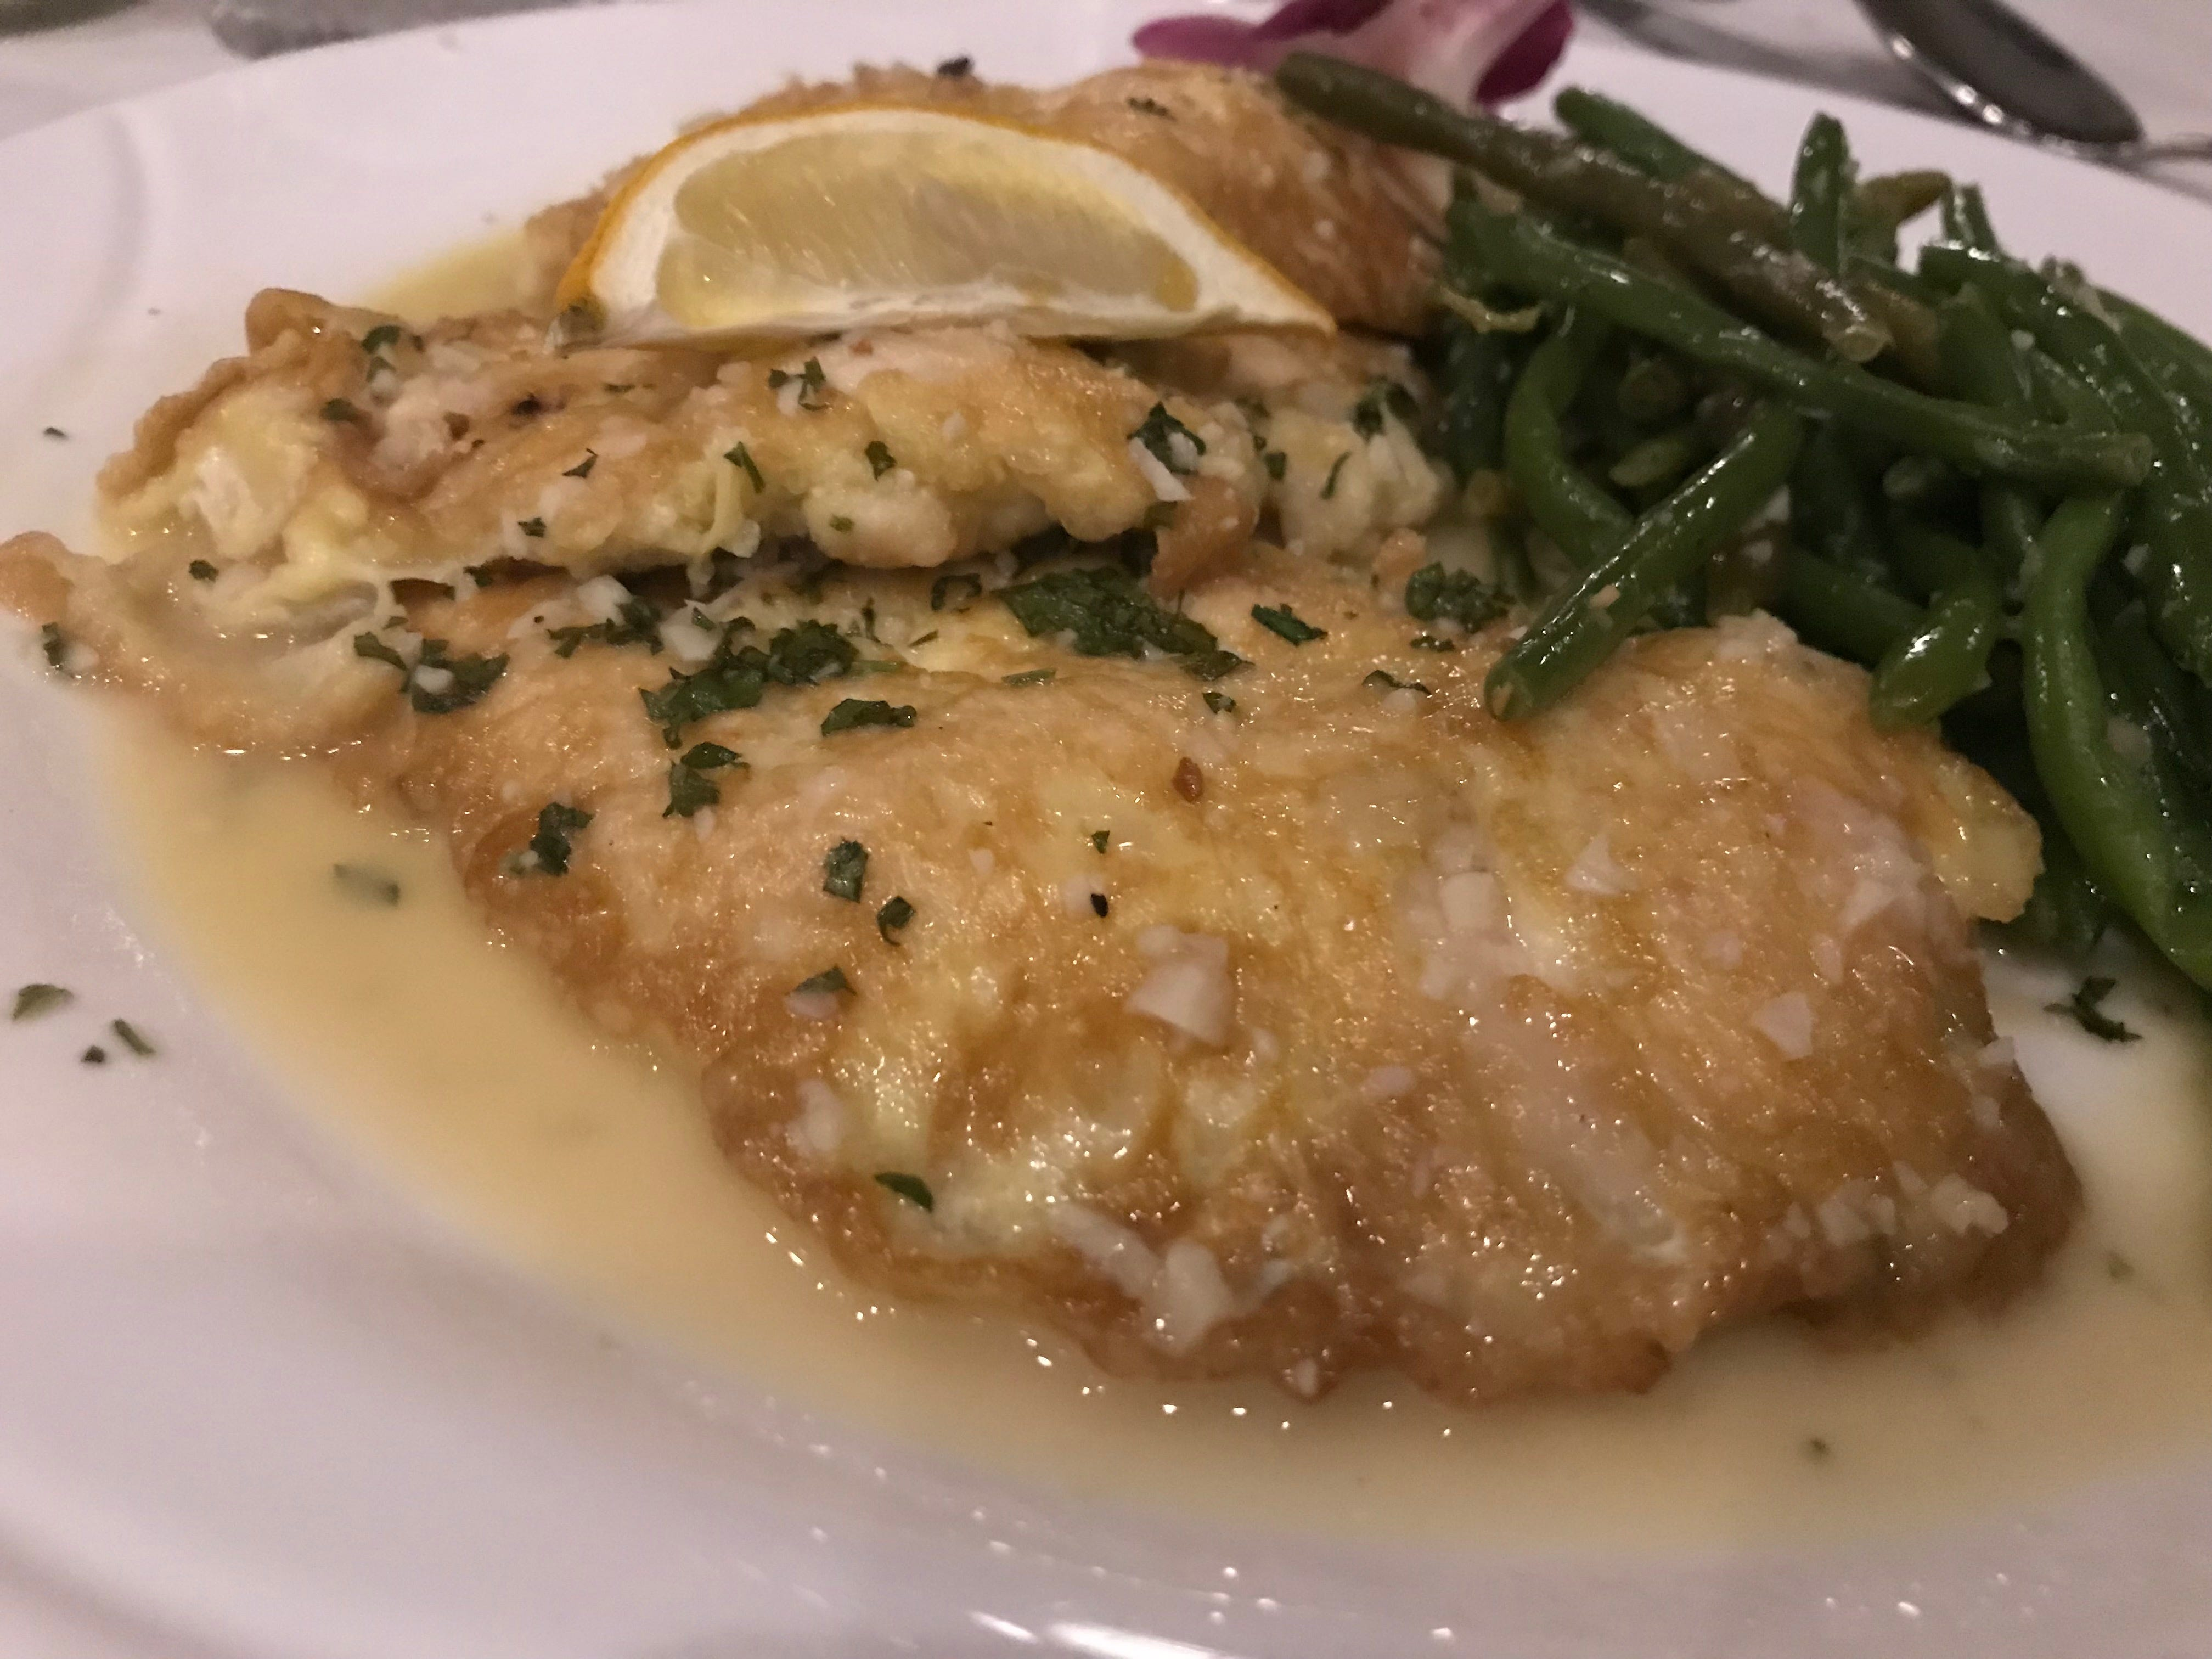 Mamma Mia's chicken francese was covered in a zesty, lemony wine sauce.